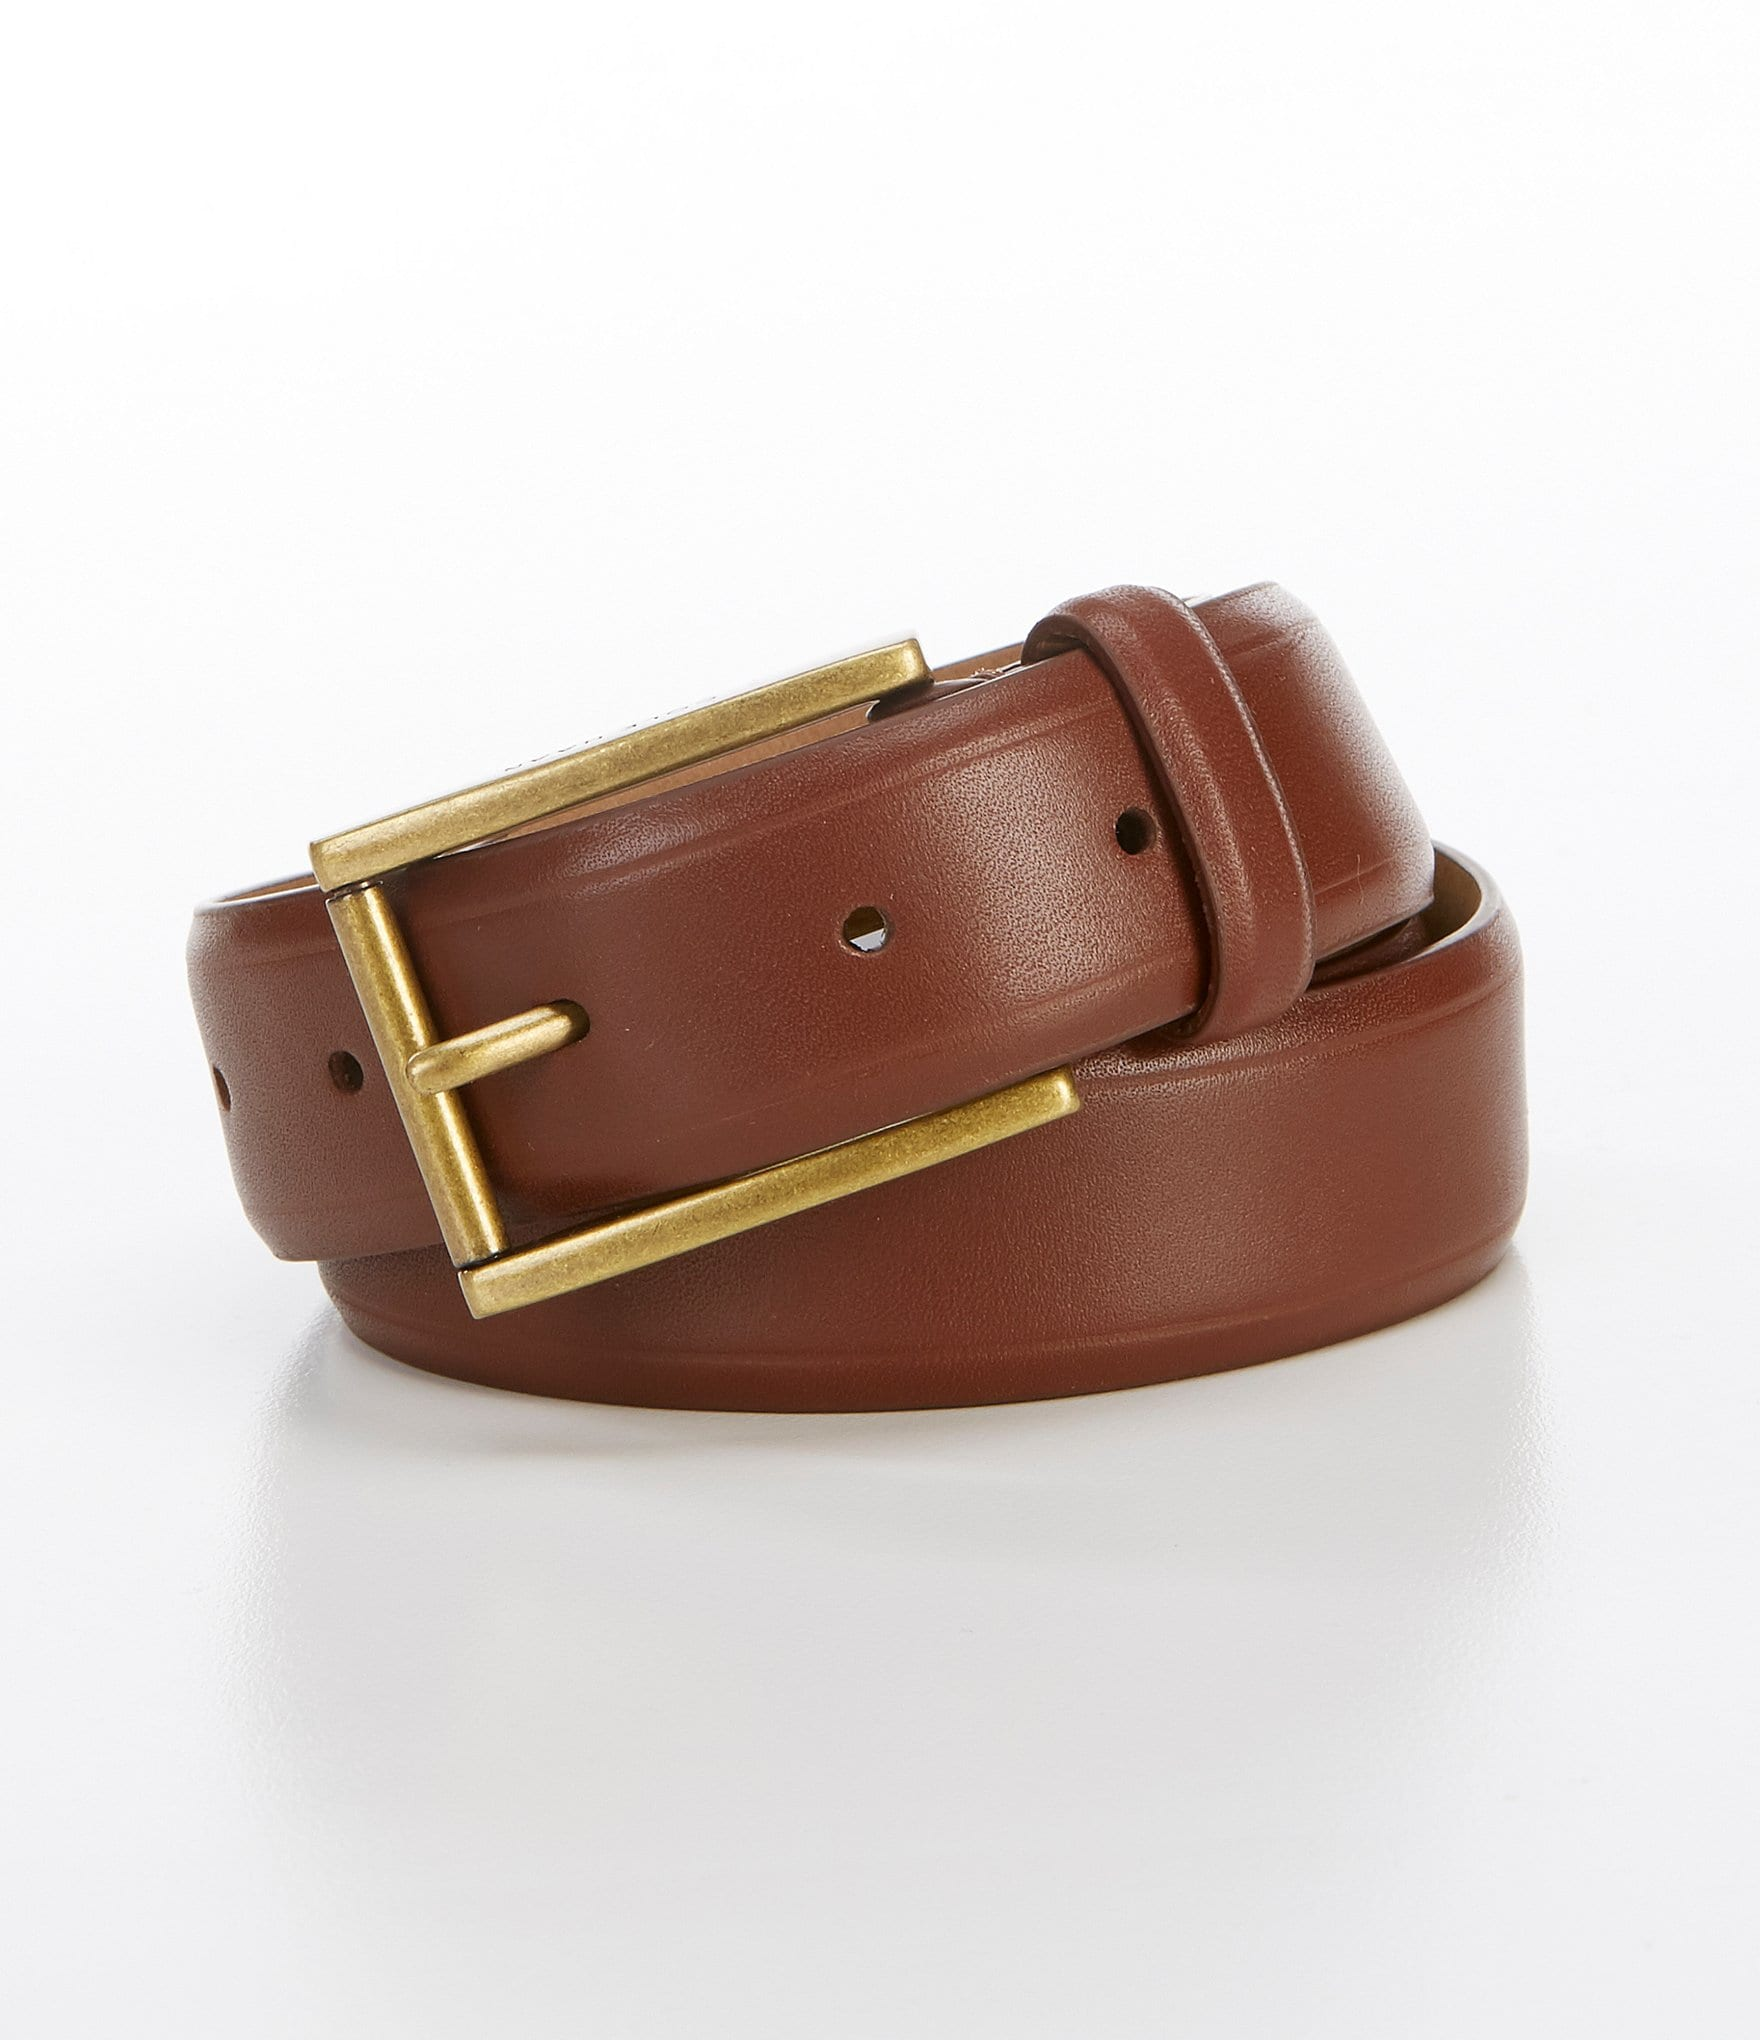 34d3d283f3 Brown Men's Belts, Hats, Wallets & Accessories | Dillard's